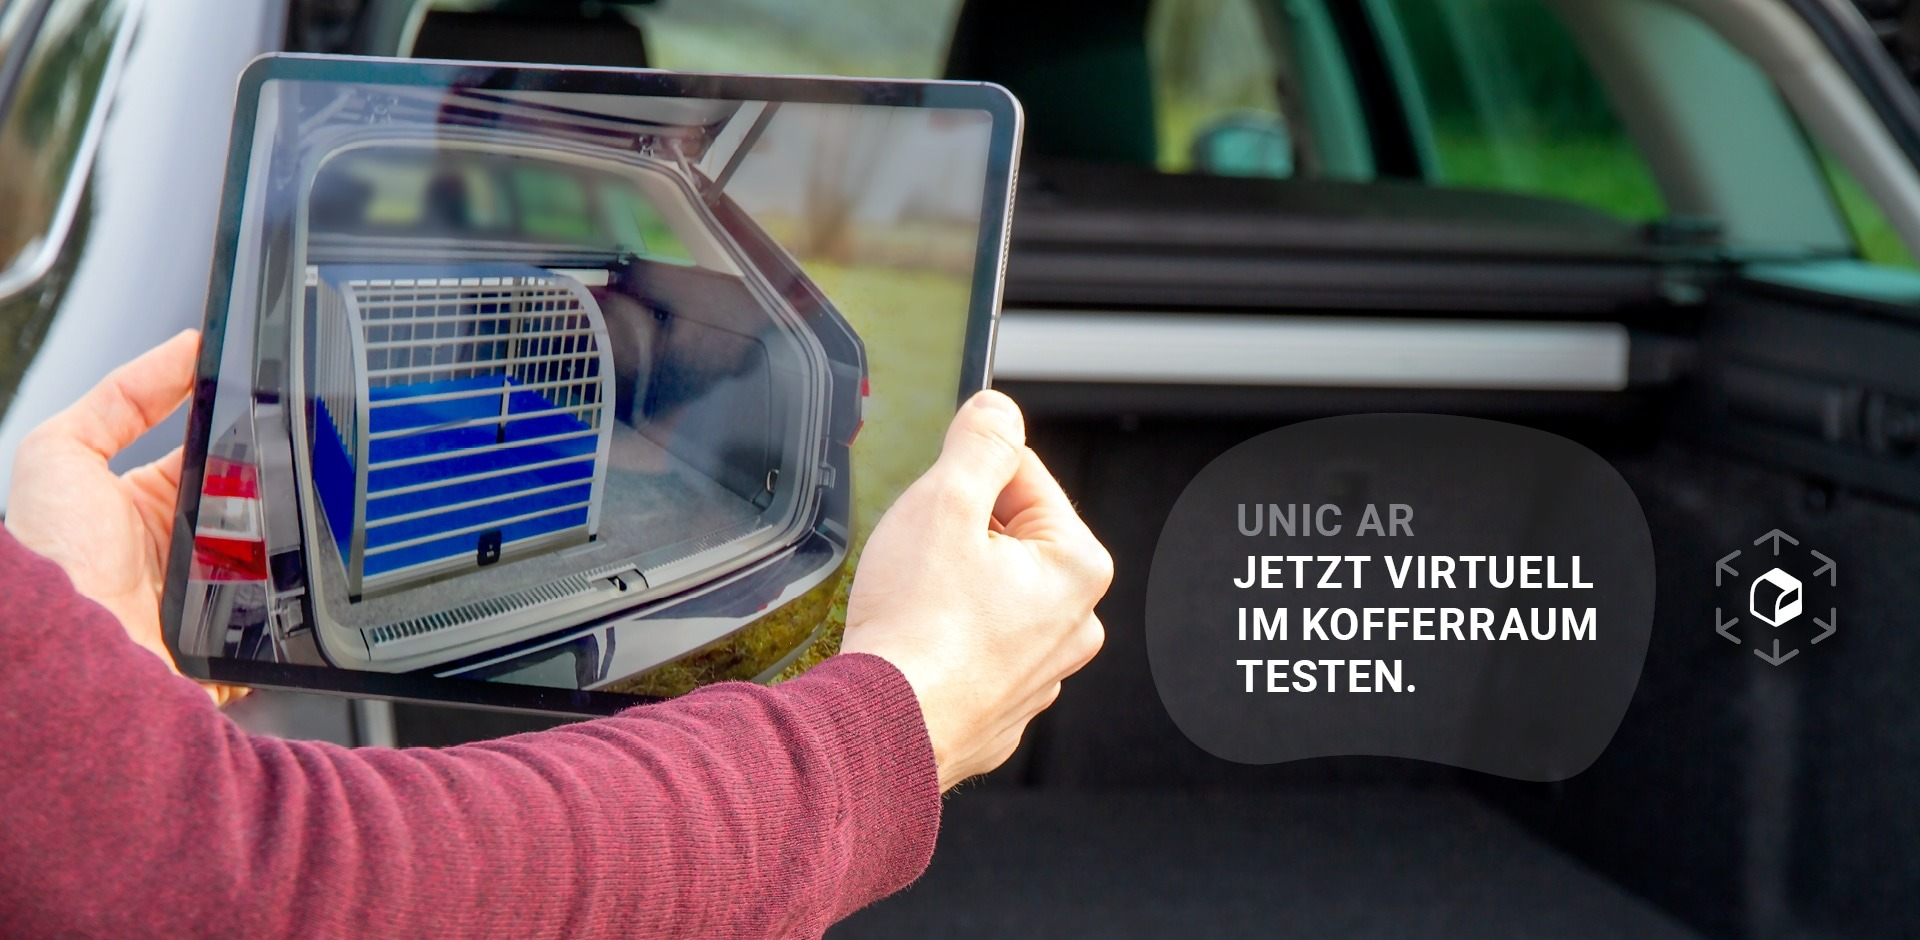 unic Augmented Reality